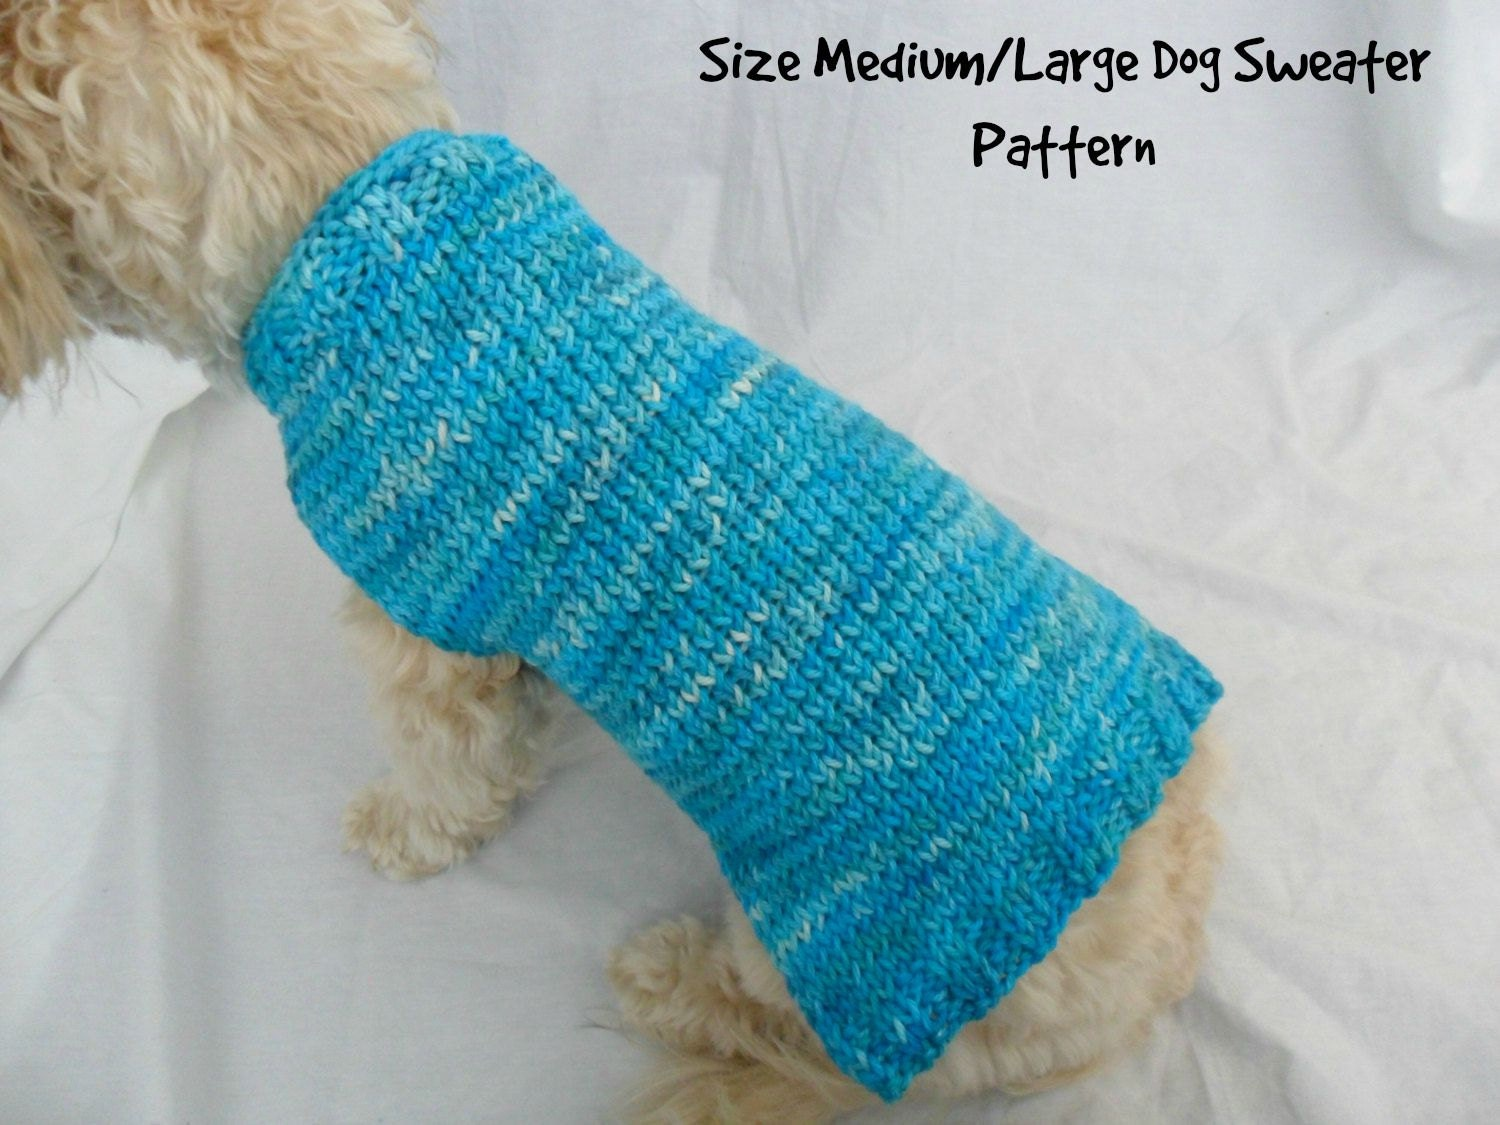 Knitting Pattern For Dog Coat Large : Easy dog sweater knitting pattern for medium and large dogs